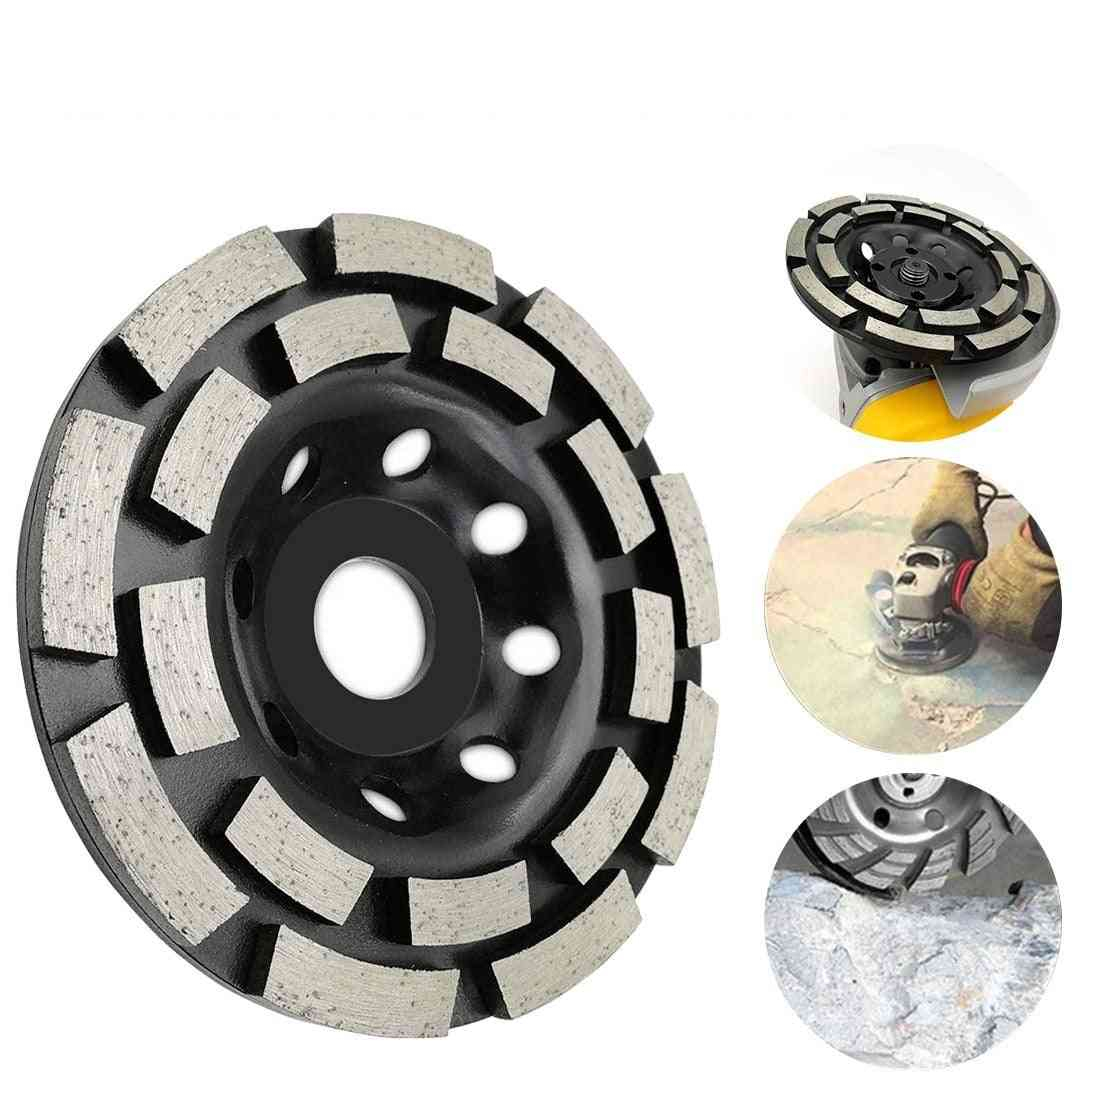 Diamond Grinding, Disc Concrete, Grinder Wheel Cutting, Cup Saw, Blade Tool